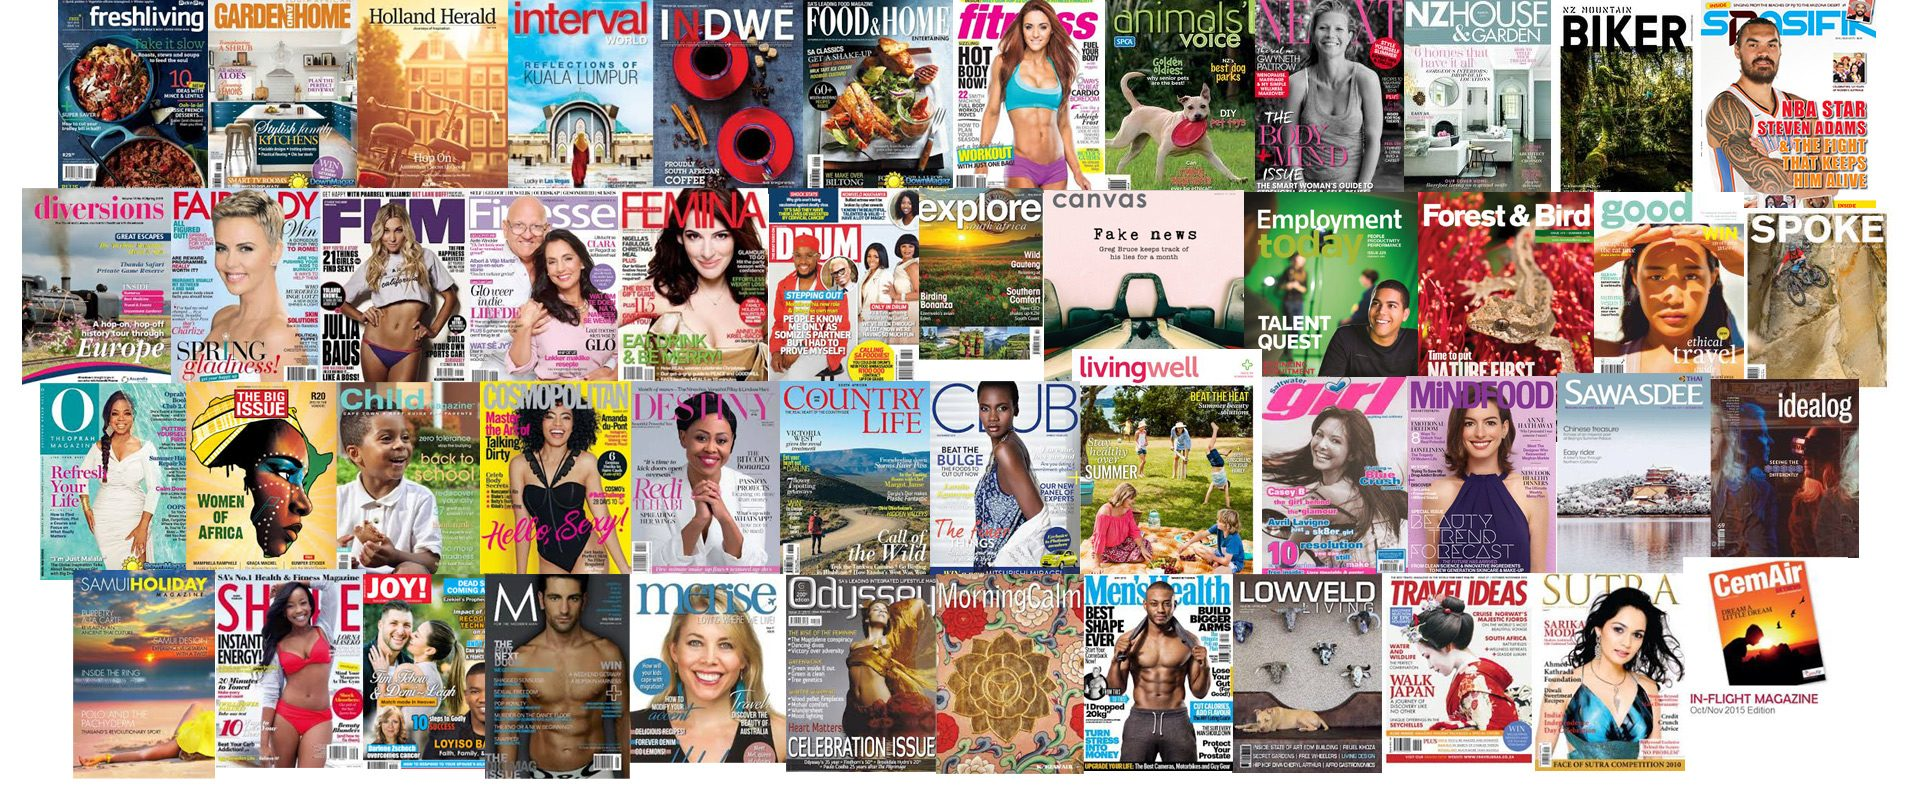 Journalism writing course publishing successes in magazines worldwide